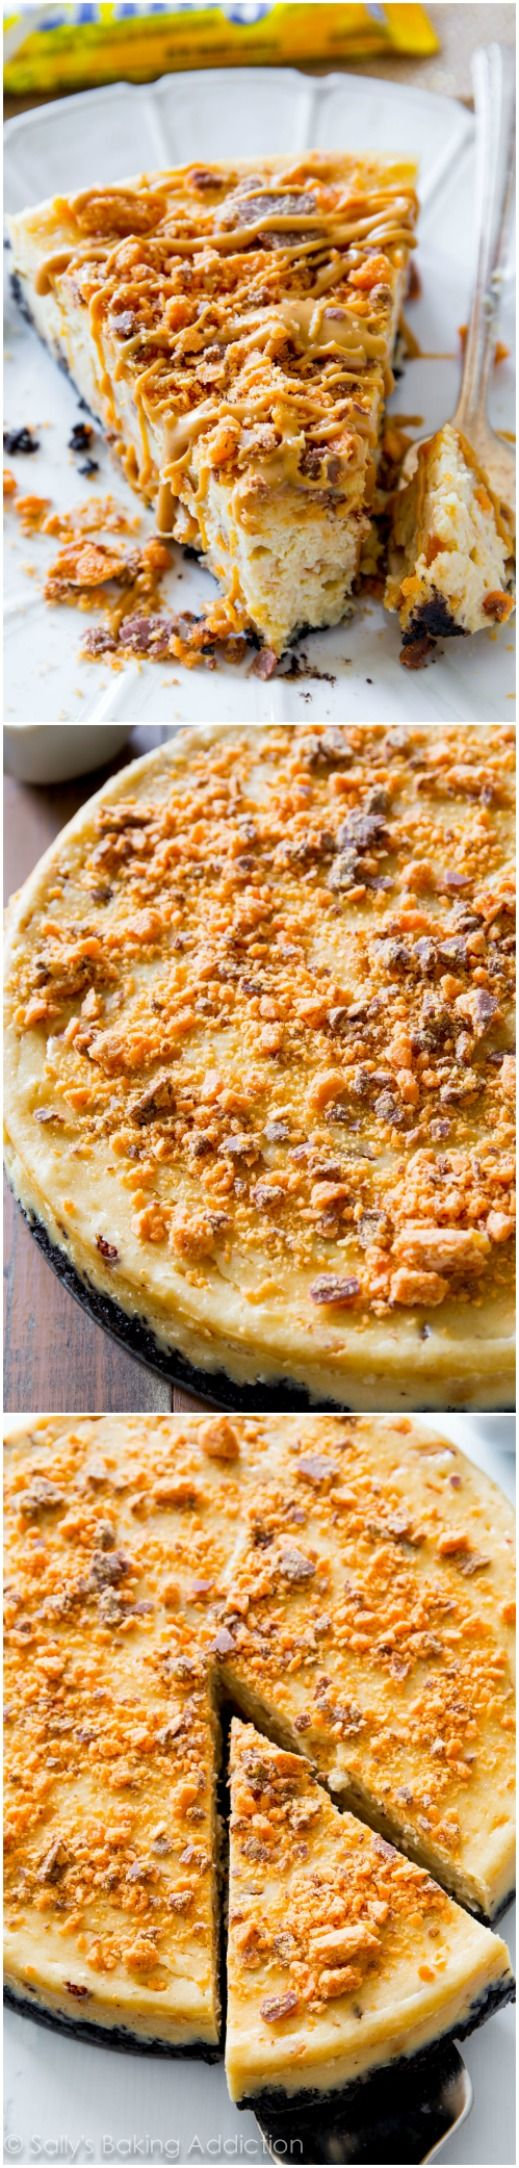 Everyone will go crazy for this Peanut Butter Butterfinger Cheesecake Recipe ~ rich peanut butter cheesecake filled with crushed Butterfinger candy bars and topped with peanut butter drizzle. This is one incredibly indulgent dessert!